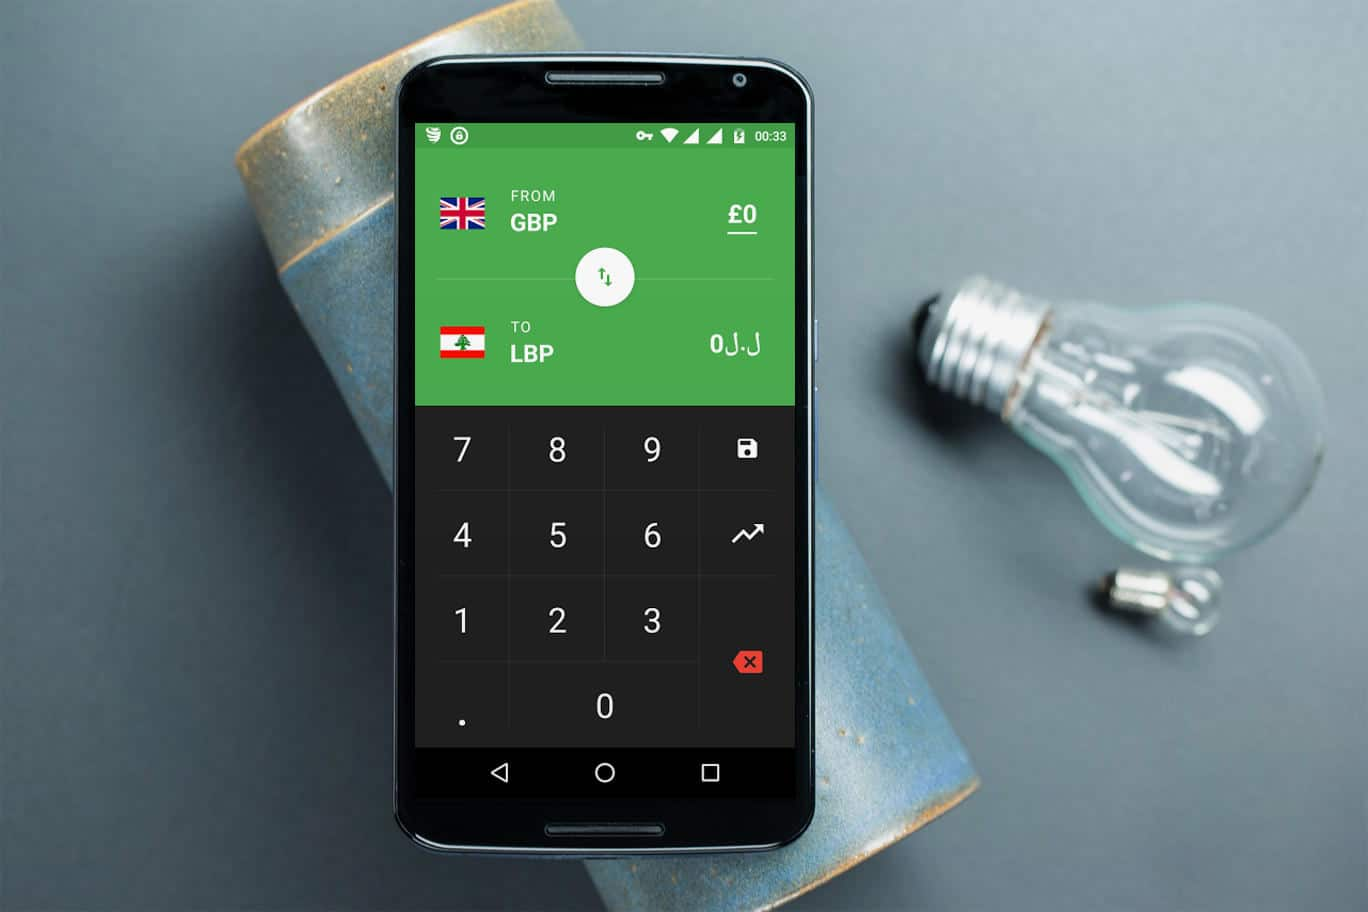 Best currency converter apps for android - 6 Best Currency Converter Apps for Android for Quick Currency Conversion